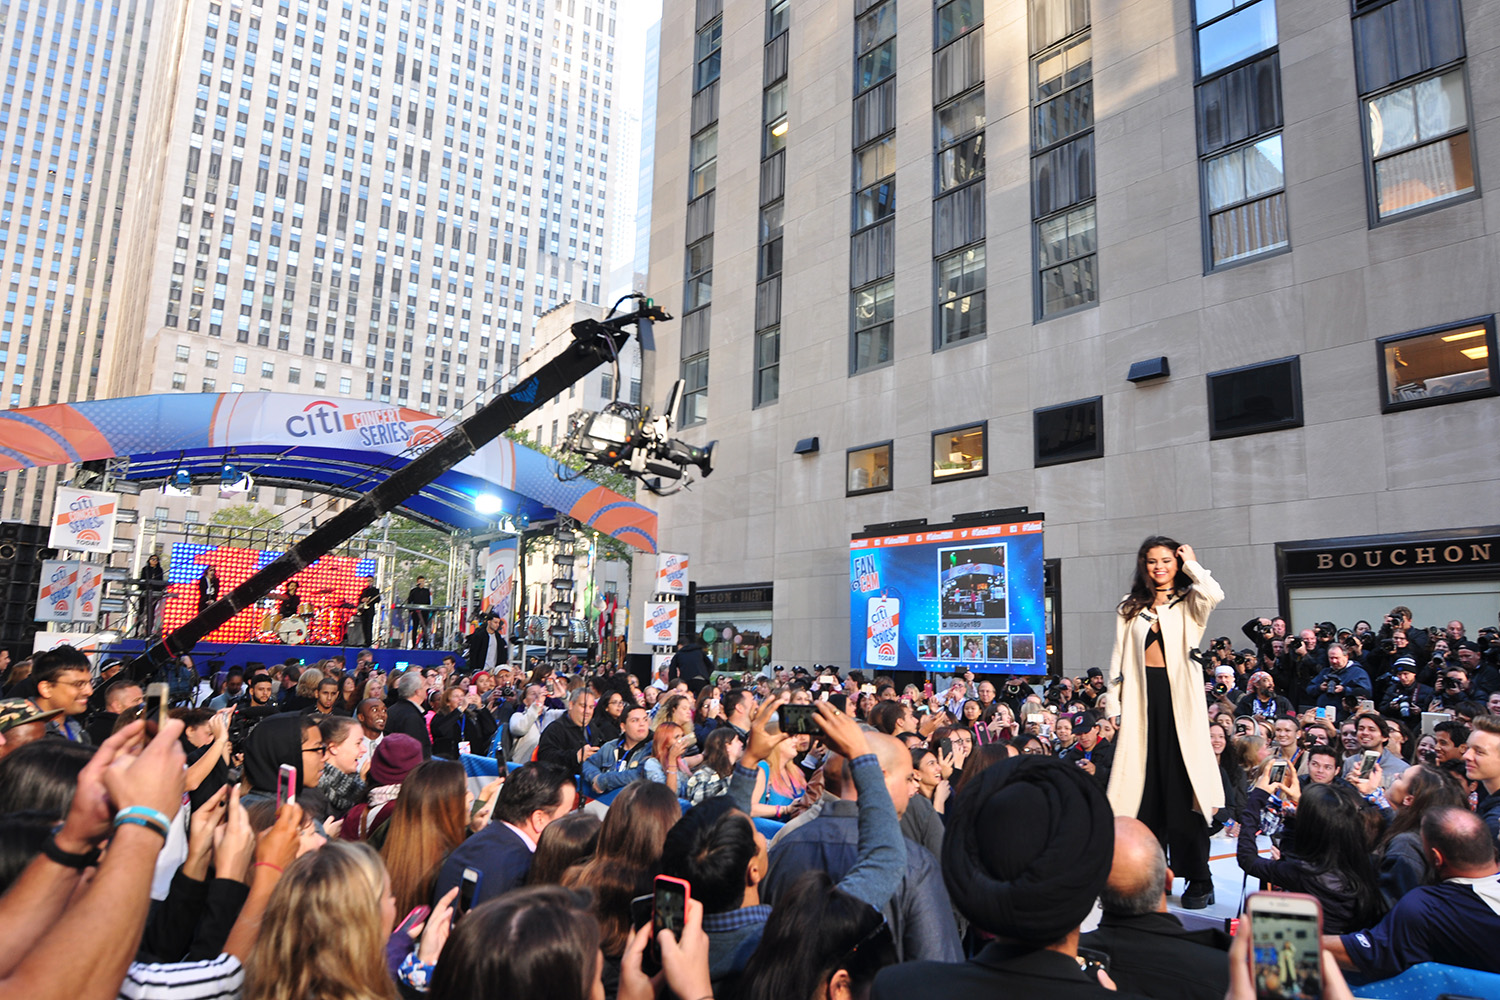 Upstage Video - V-Tower Outdoor Screen Rental